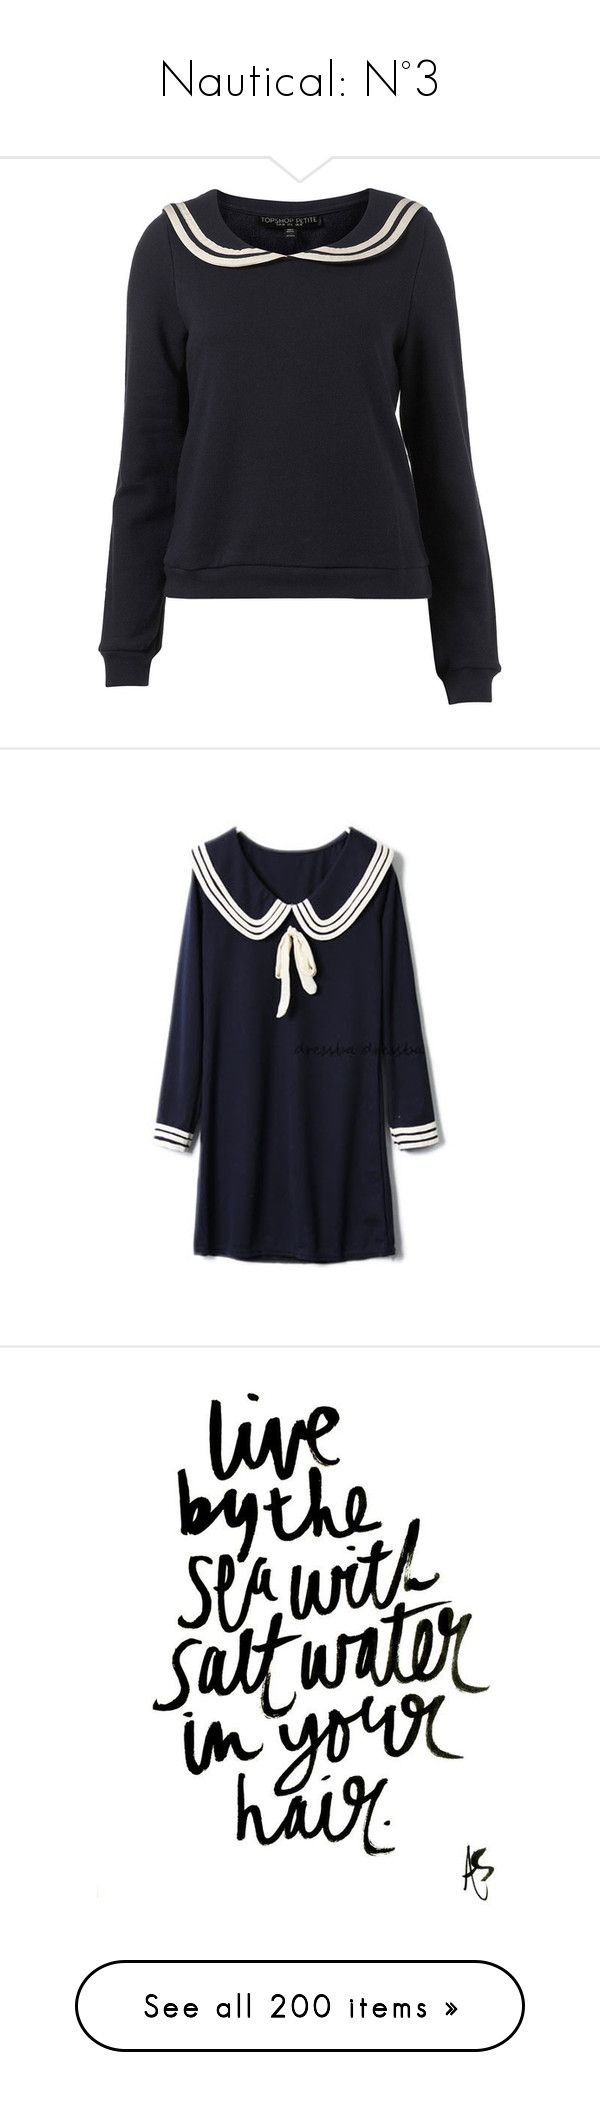 """Nautical: N°3"" by roo-roo-lu ❤ liked on Polyvore featuring tops, hoodies, sweatshirts, sweaters, shirts, jumper, women, navy sweatshirt, navy blue shirt and petite tops"